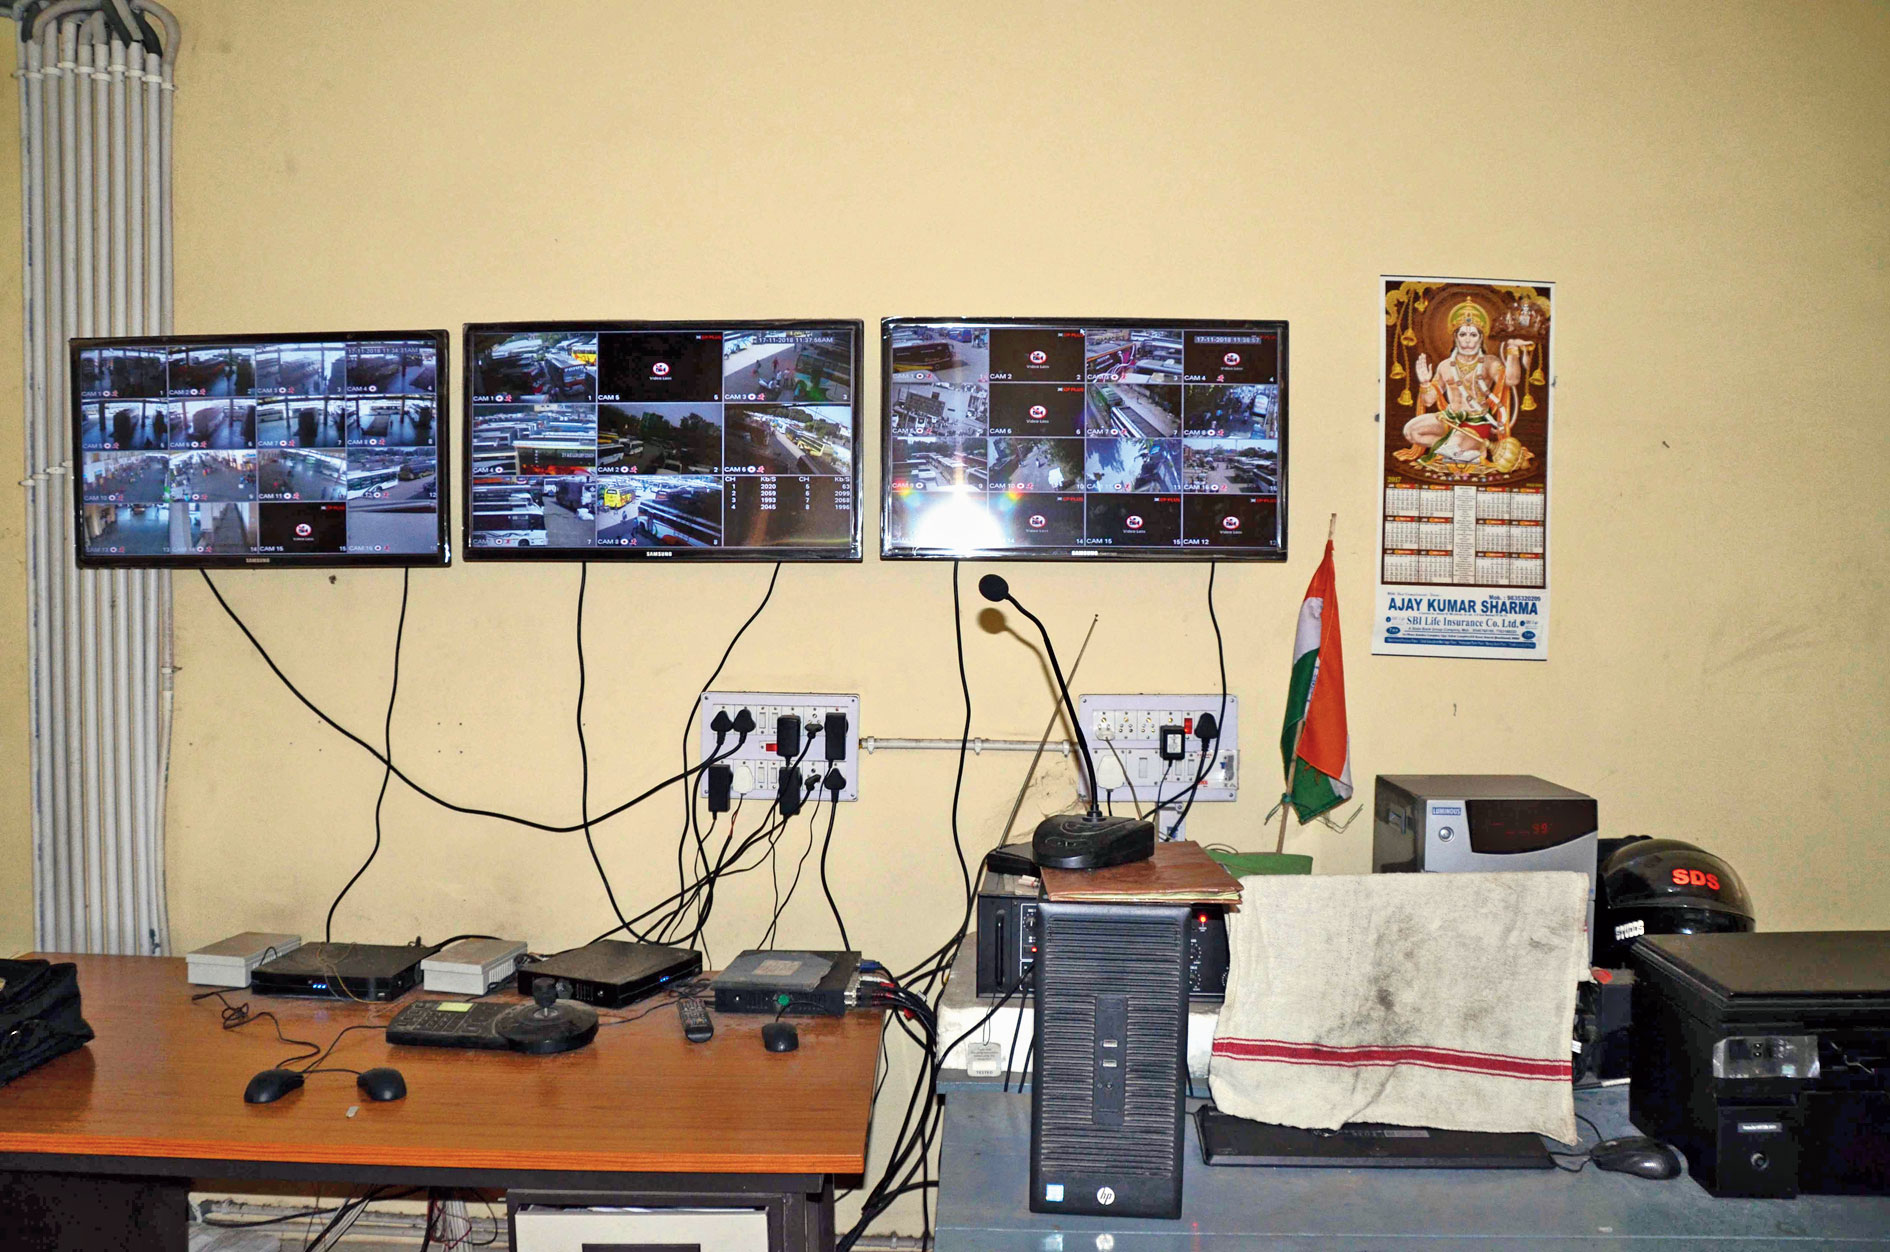 The screens monitoring the CCTV cameras in the building show an alarming number of black rectangles signifying defunct devices.